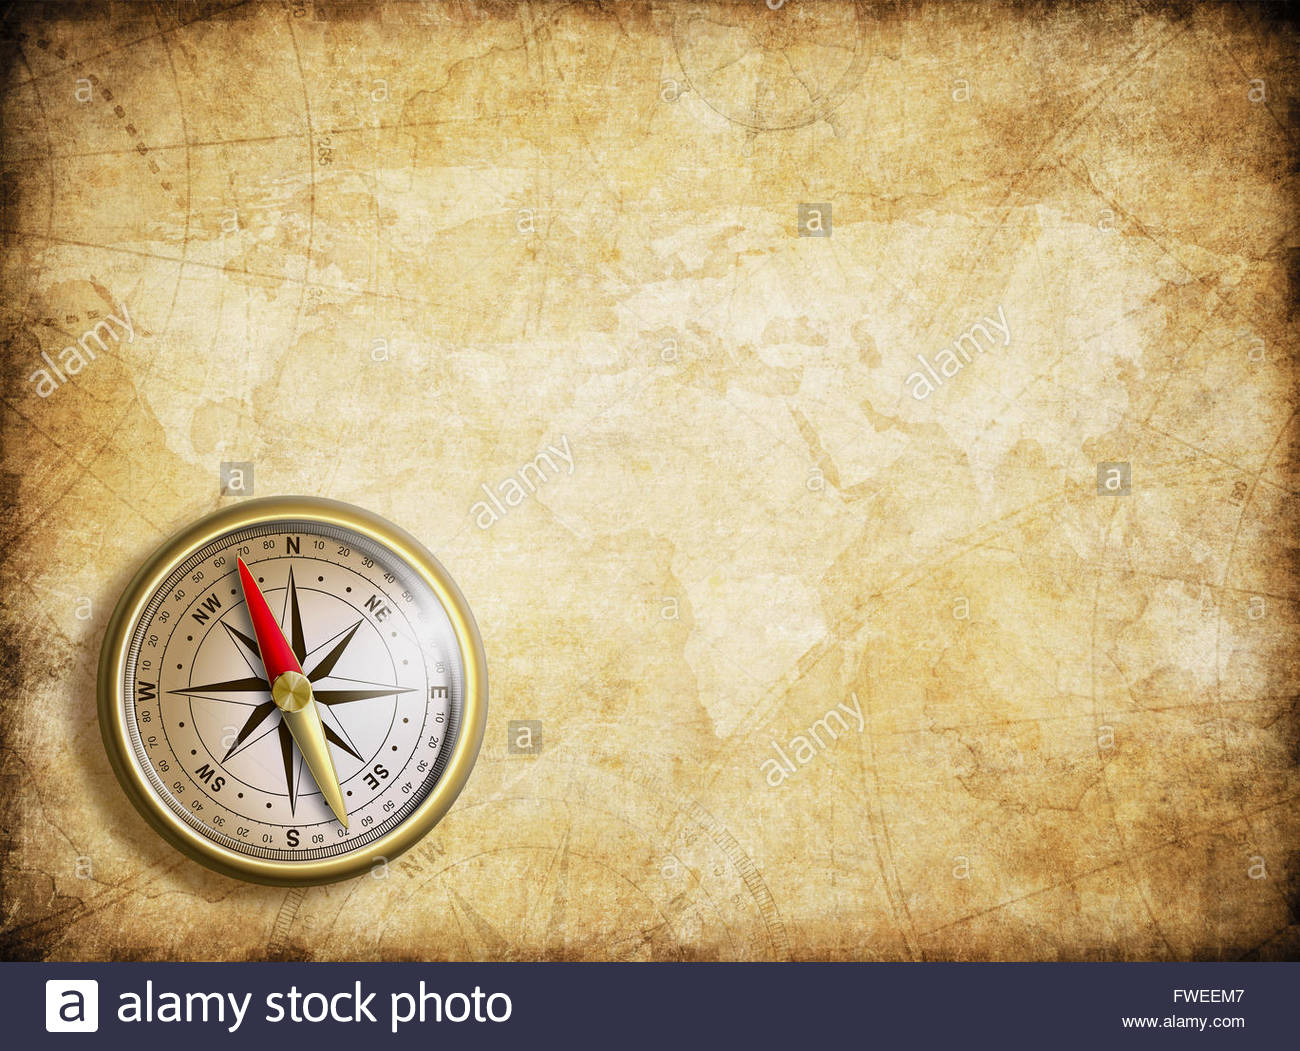 vintage map background with compass Stock Photo 101737111   Alamy 1300x1051